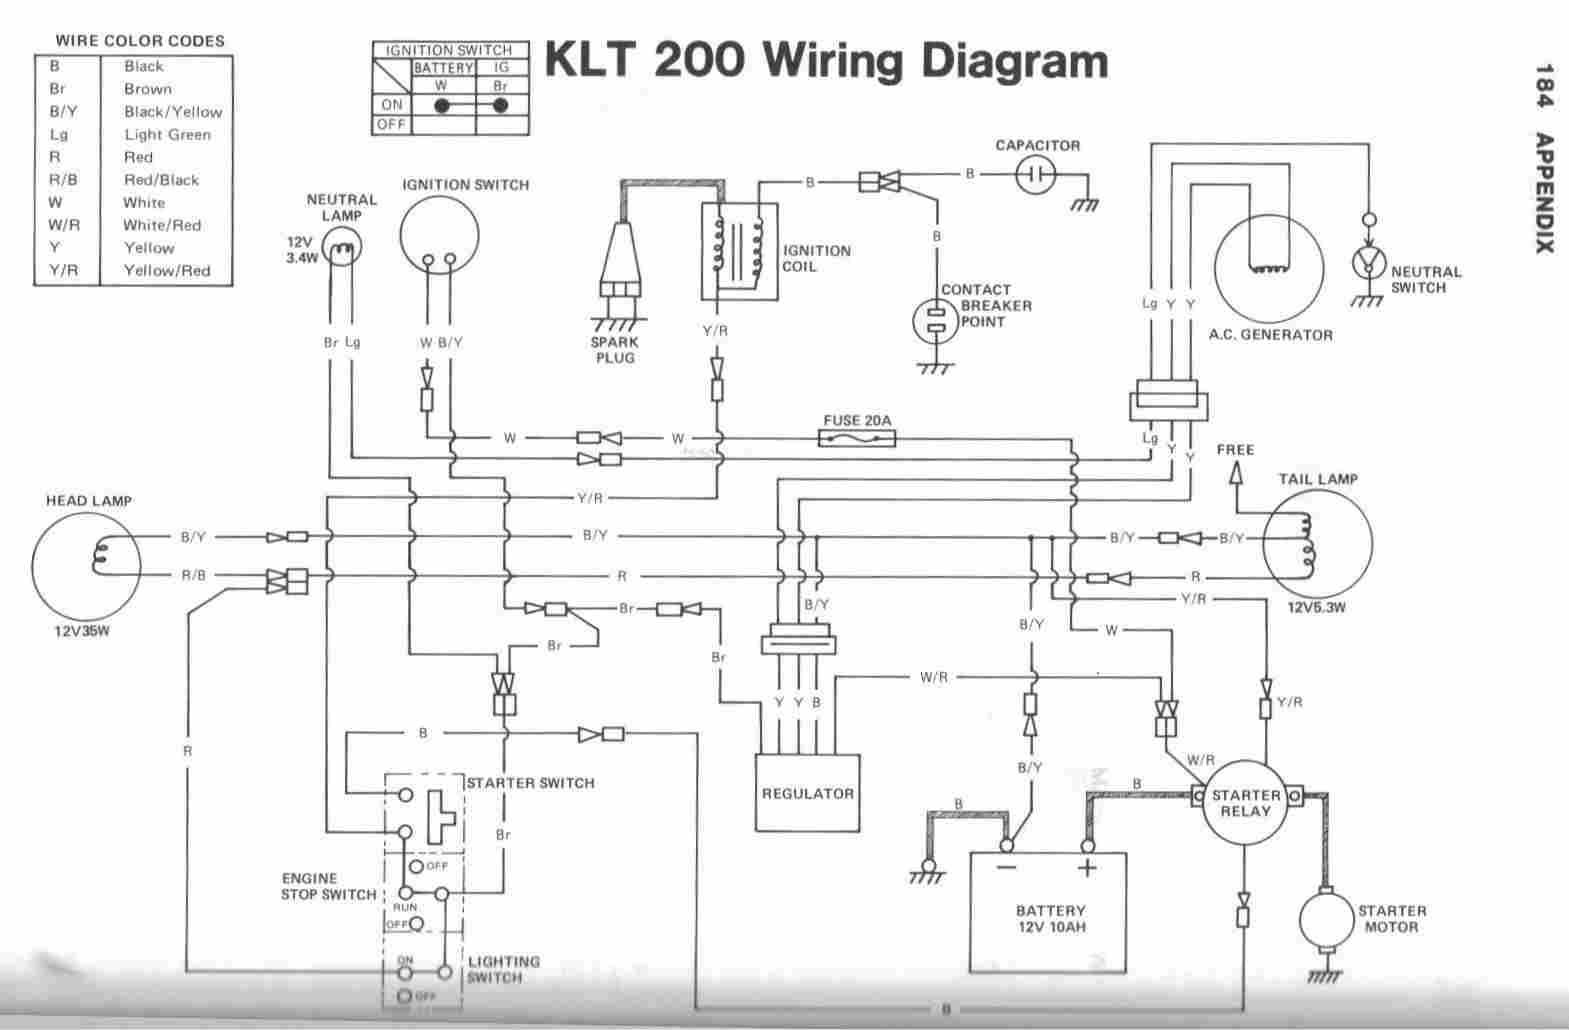 2869034594ce054a636782e5c44b61b4 residential electrical wiring diagrams pdf easy routing cool power wiring diagram deluxe space invaders at pacquiaovsvargaslive.co